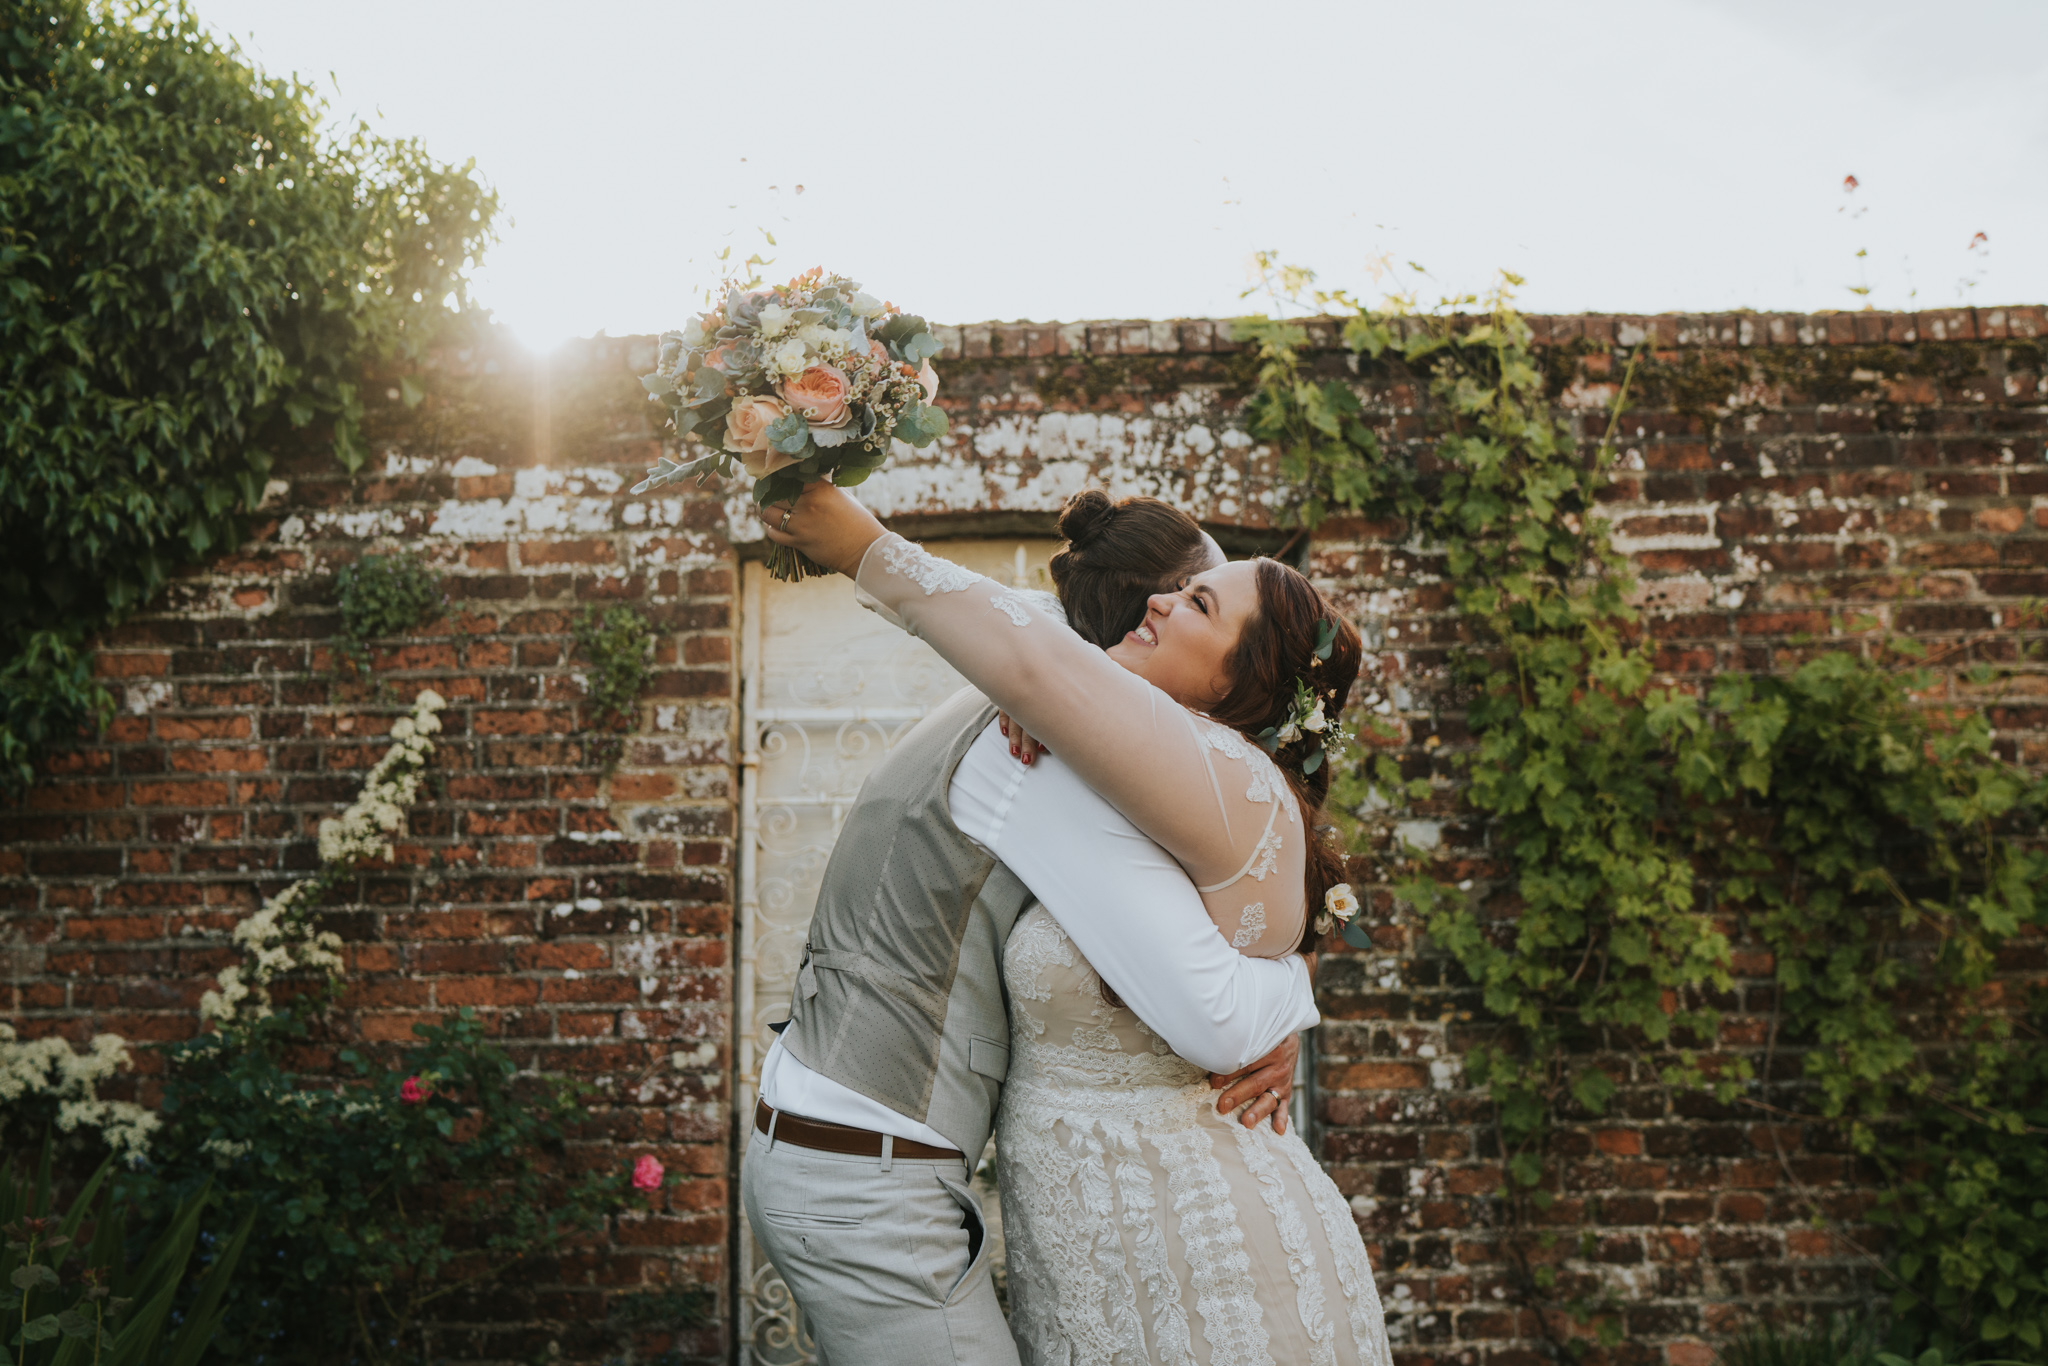 hayley + sam - We booked Grace as our wedding photographer and had an engagement shoot with her and I can honesty say that it is one of the best wedding decisions we made. Grace takes incredible photos and captured the energy between us perfectly. She is so adaptable, instantly picking up on my camera shyness and figuring out how to get the best shots out of me without making me uncomfortable, and I love our photos because whenever I look at them I am taken back to that day and how happy I felt. It is a real gift to be able to do that, to take a picture that so perfectly captures the emotion of a moment that you look beyond what makes you self-conscious and are just transported back to that feeling.So many of our guests commented on how amazing Grace was, and she managed to get brilliant shots that are full of life and fun. I wouldn't hesitate to recommend her to anyone. Our wedding day was the happiest day of our lives, and you can see that in our photos, which we will treasure for the rest of our lives. So thank you Grace for being a part of our day, and we hope to stay in touch for many years to come.